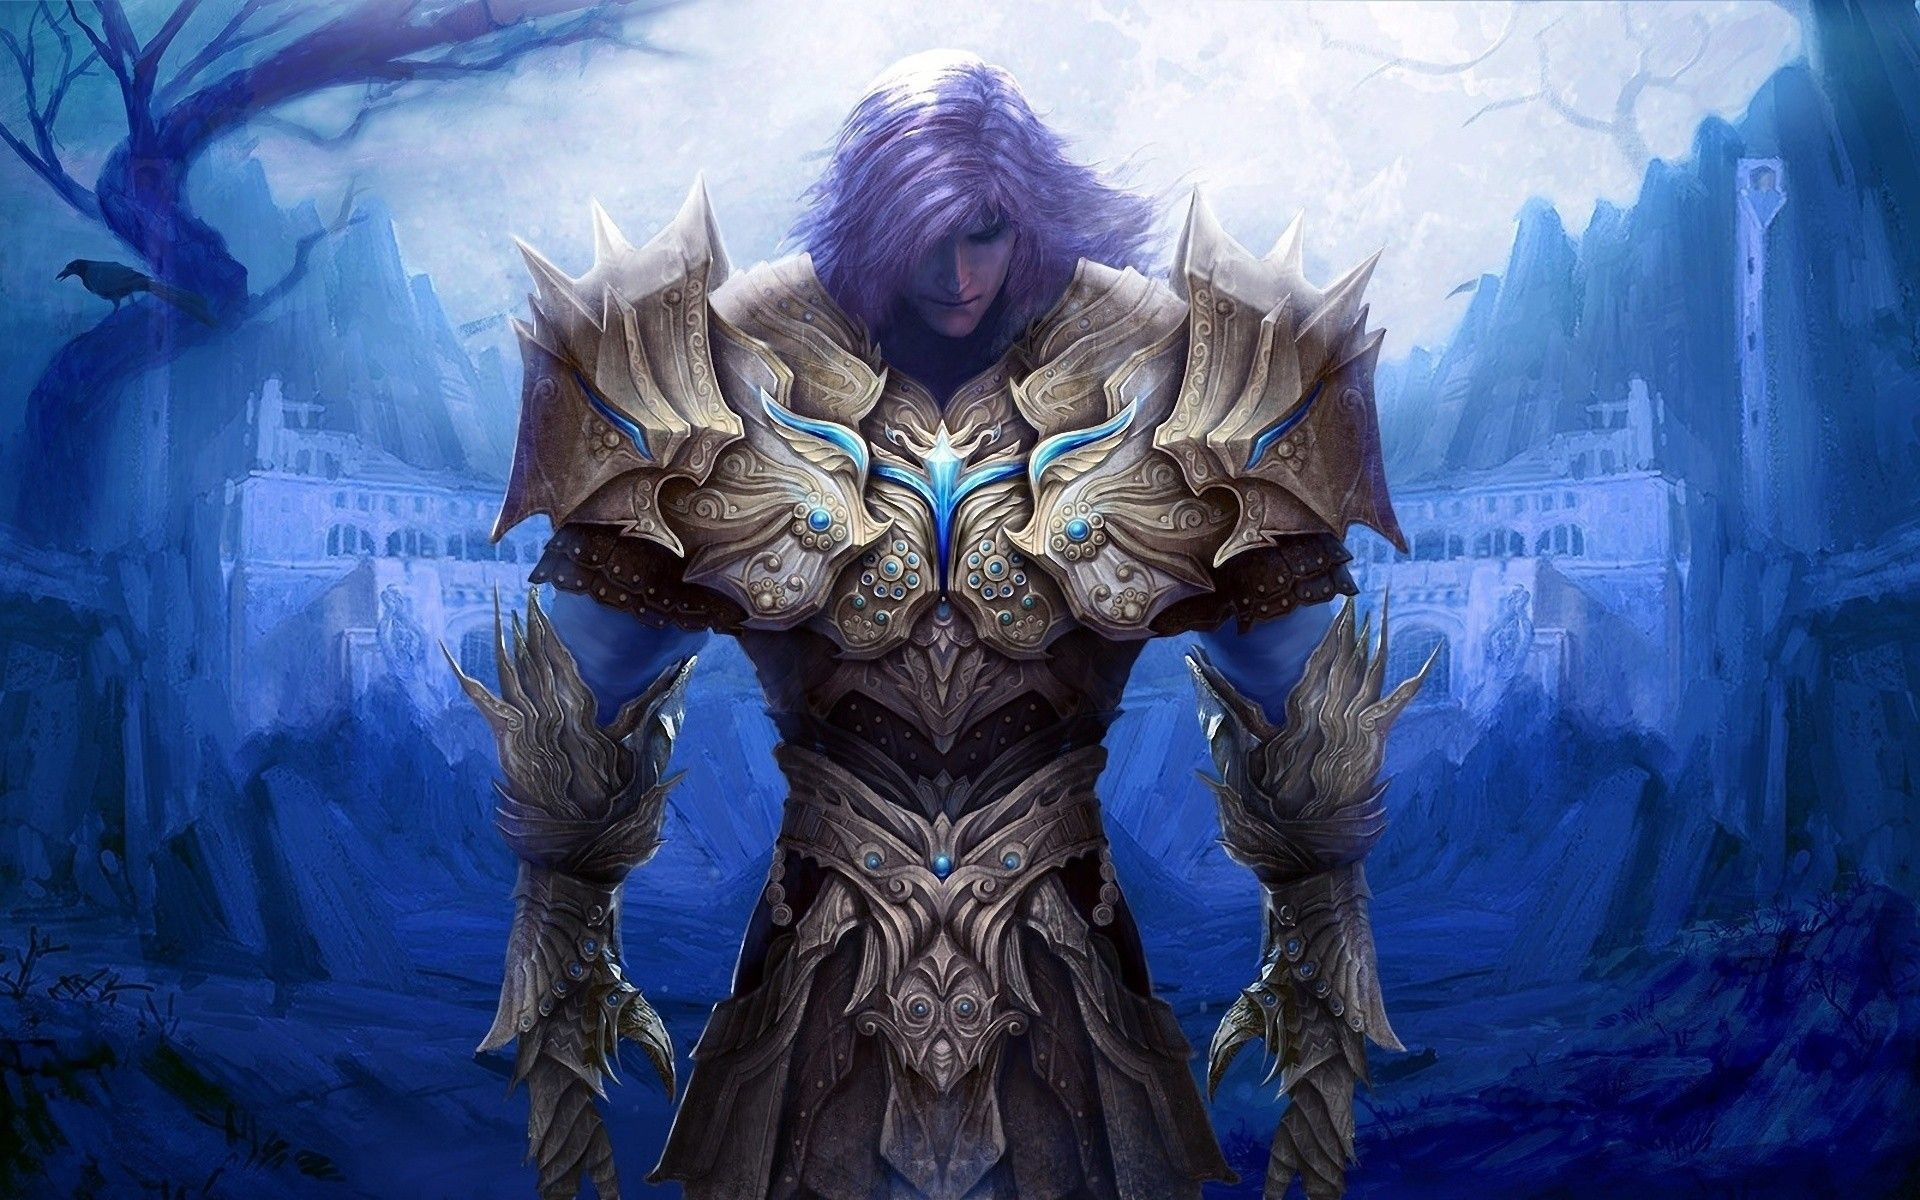 Paladin Wallpaper Download Free Stunning Wallpapers For Desktop